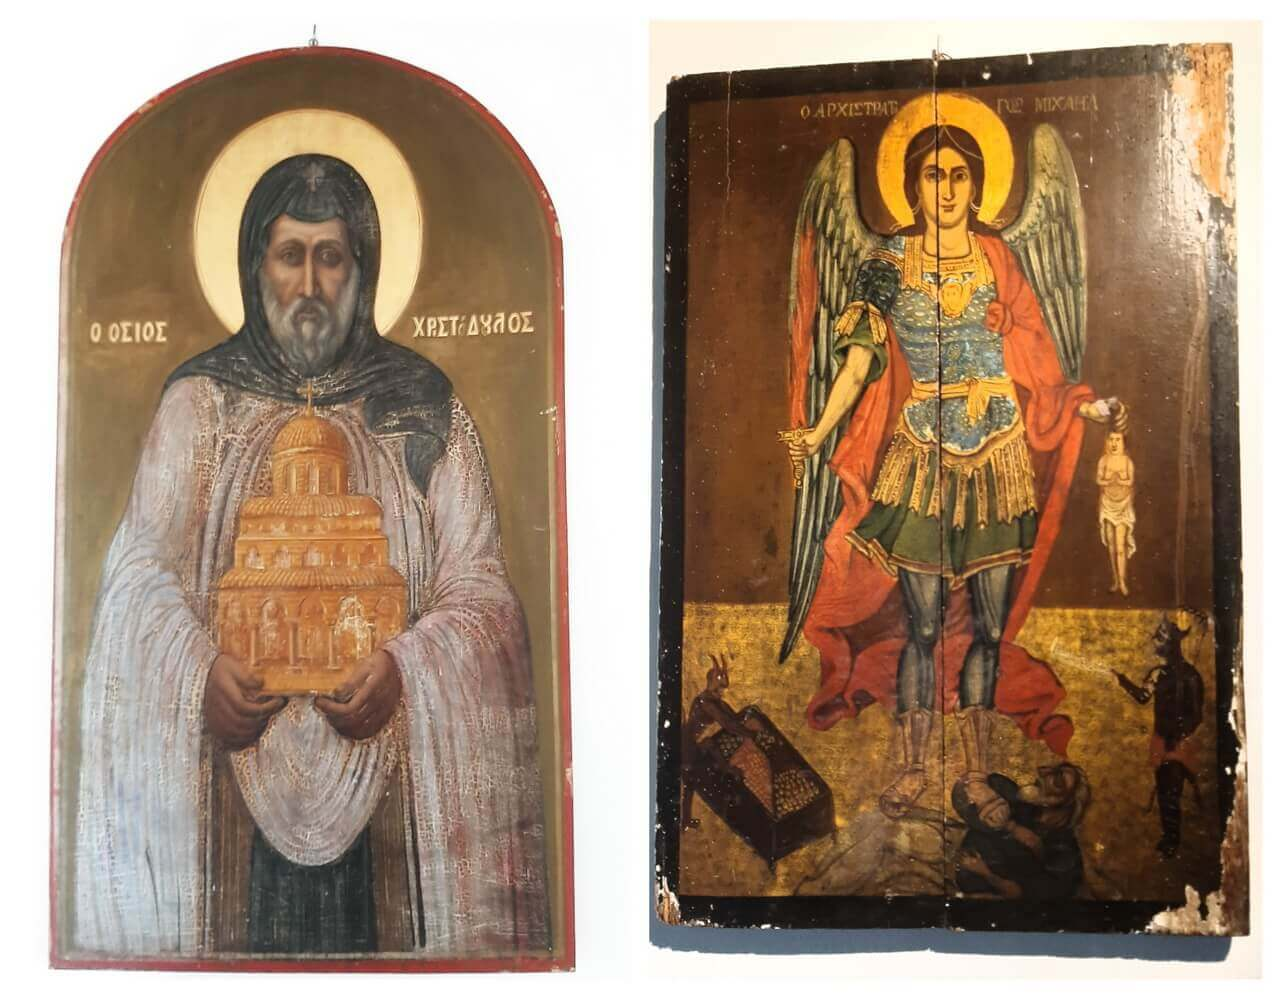 Icons of Christodopoulos and Archangel Michael